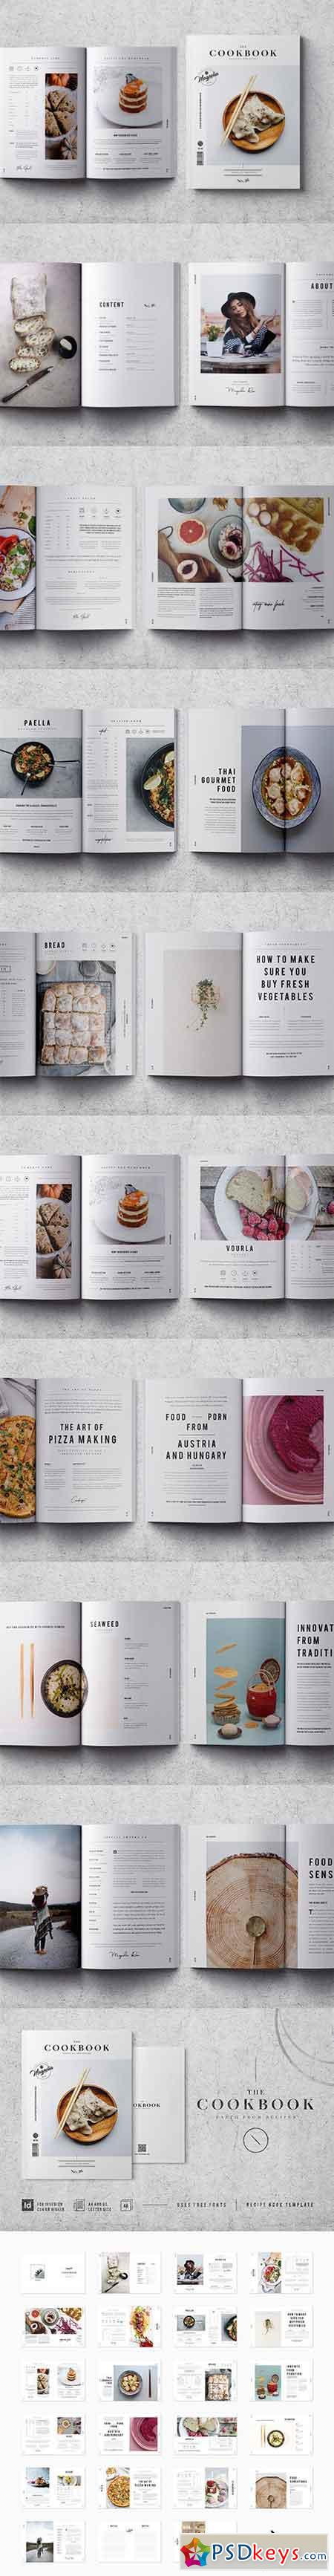 Cookbook Recipe Book V.02 2635695